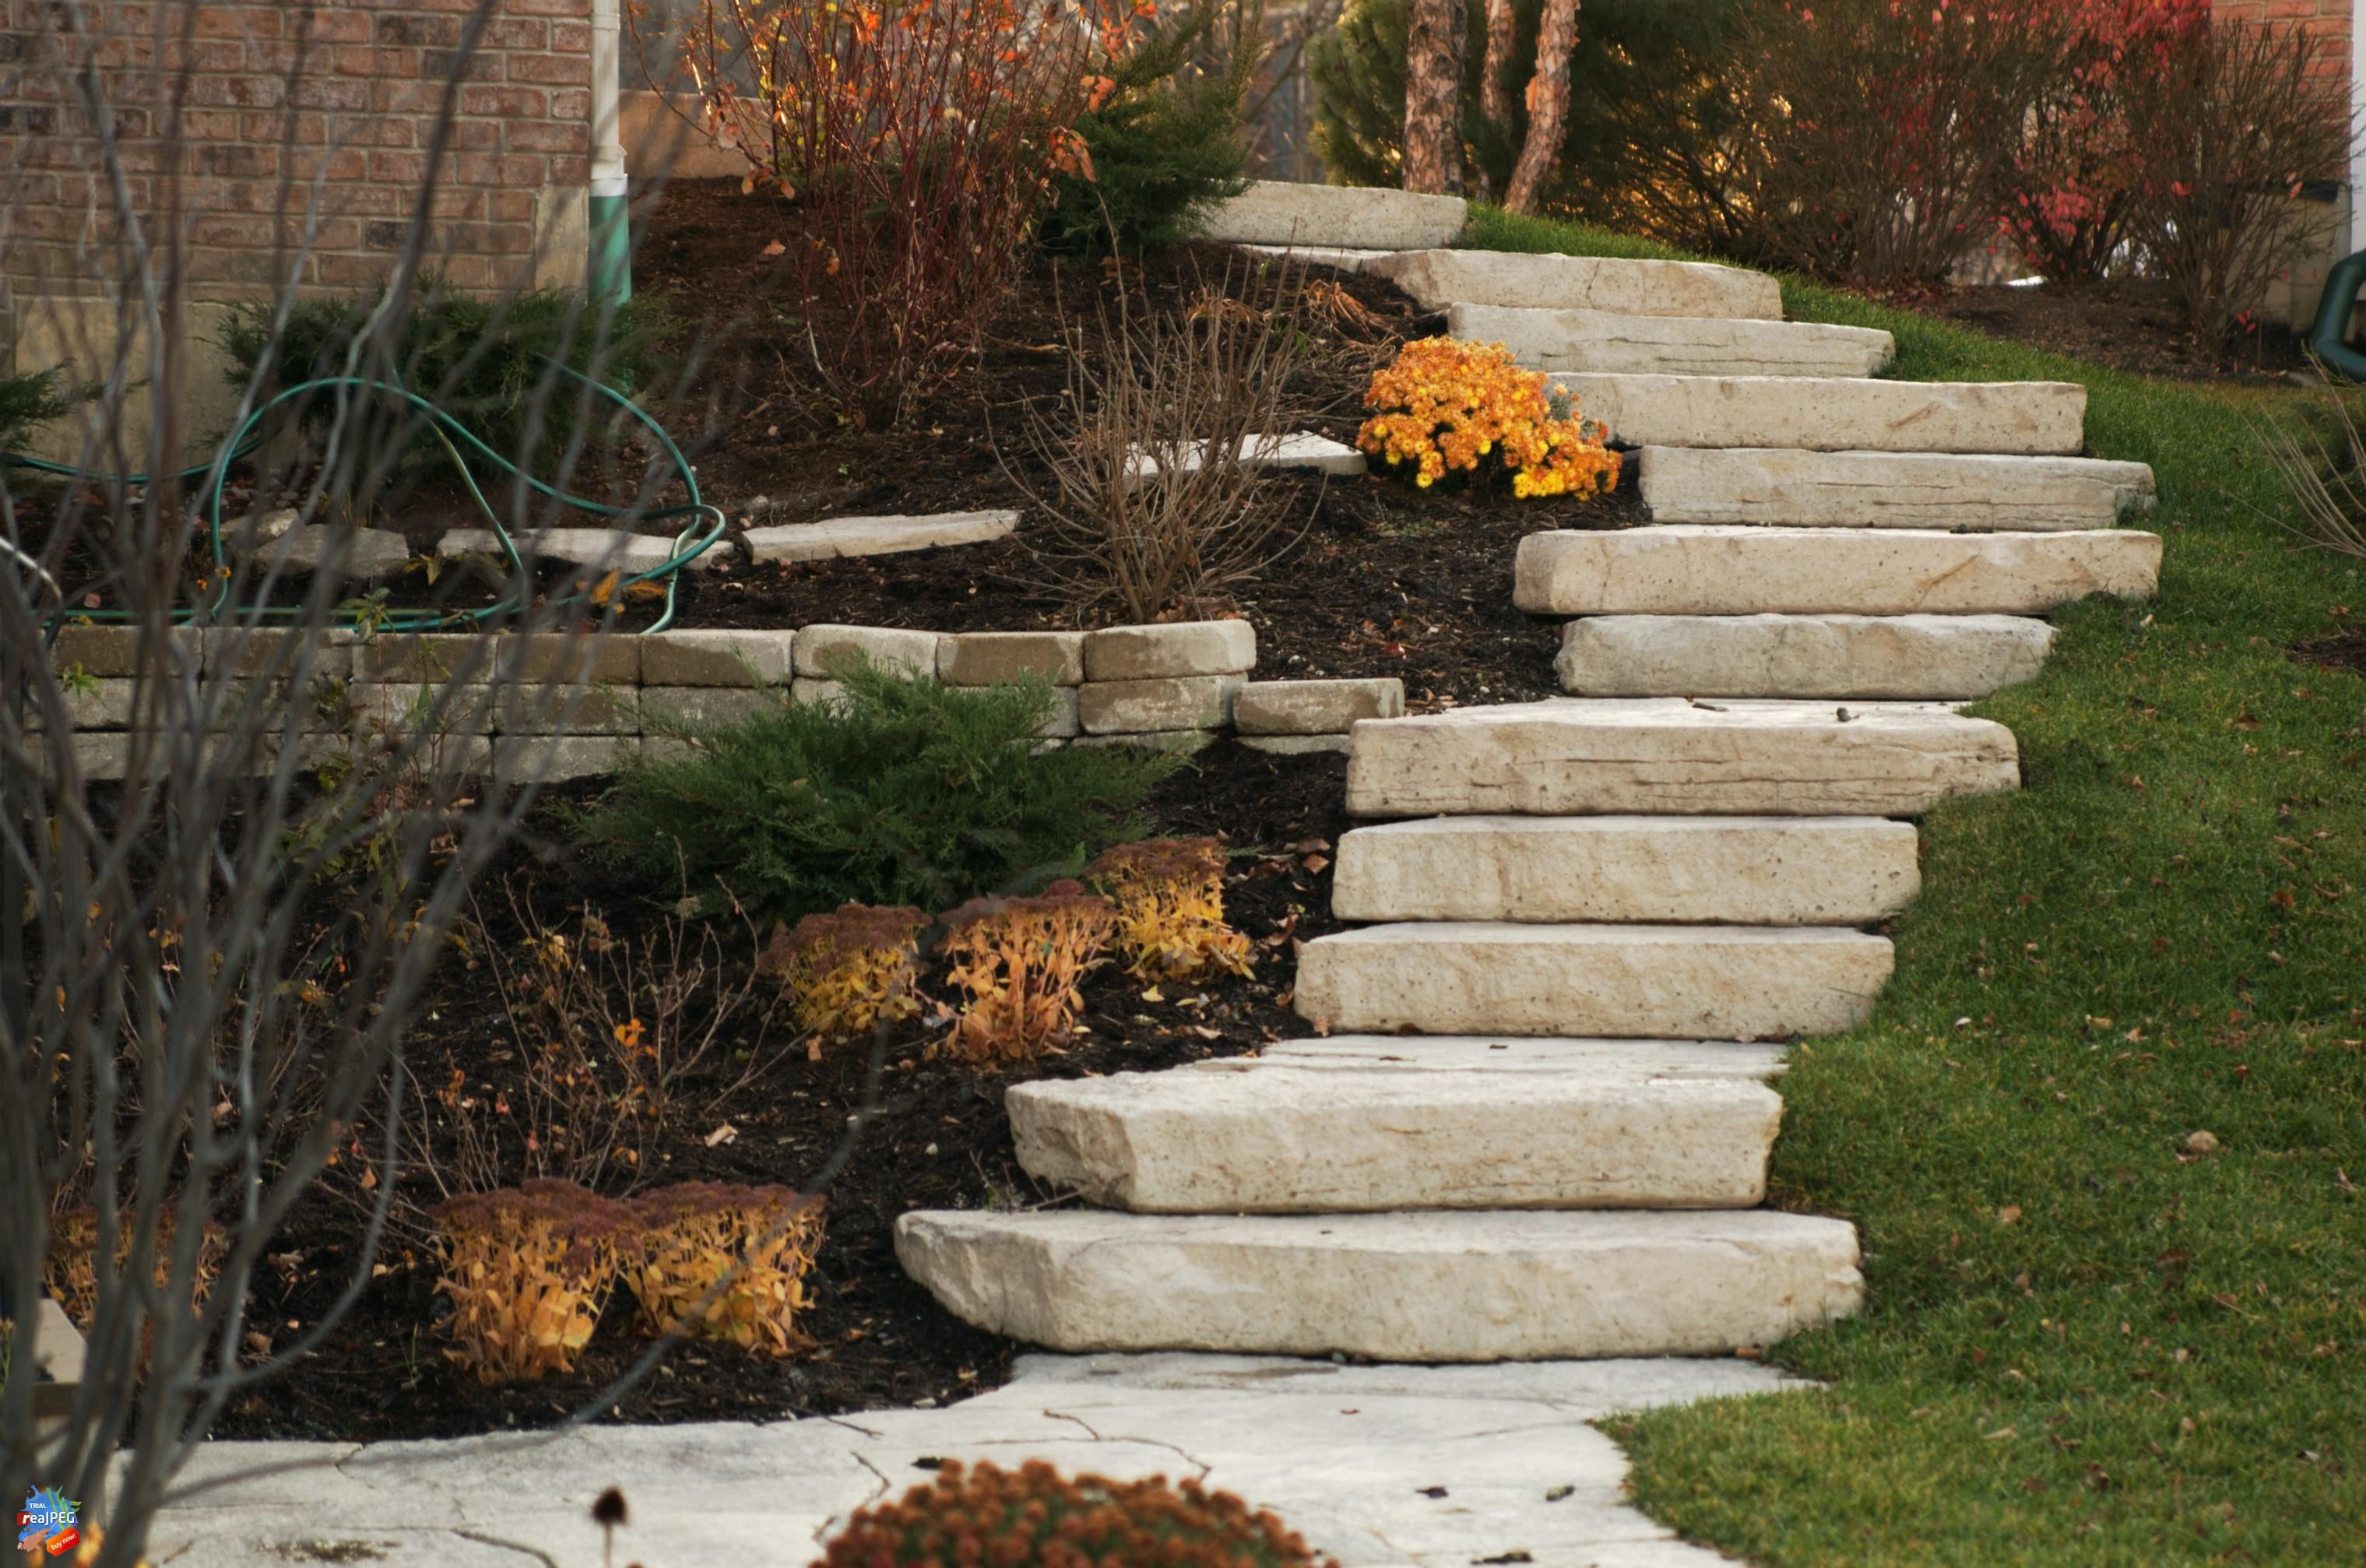 rosetta hardscapes healthy home 2010 patio and steps landscapes